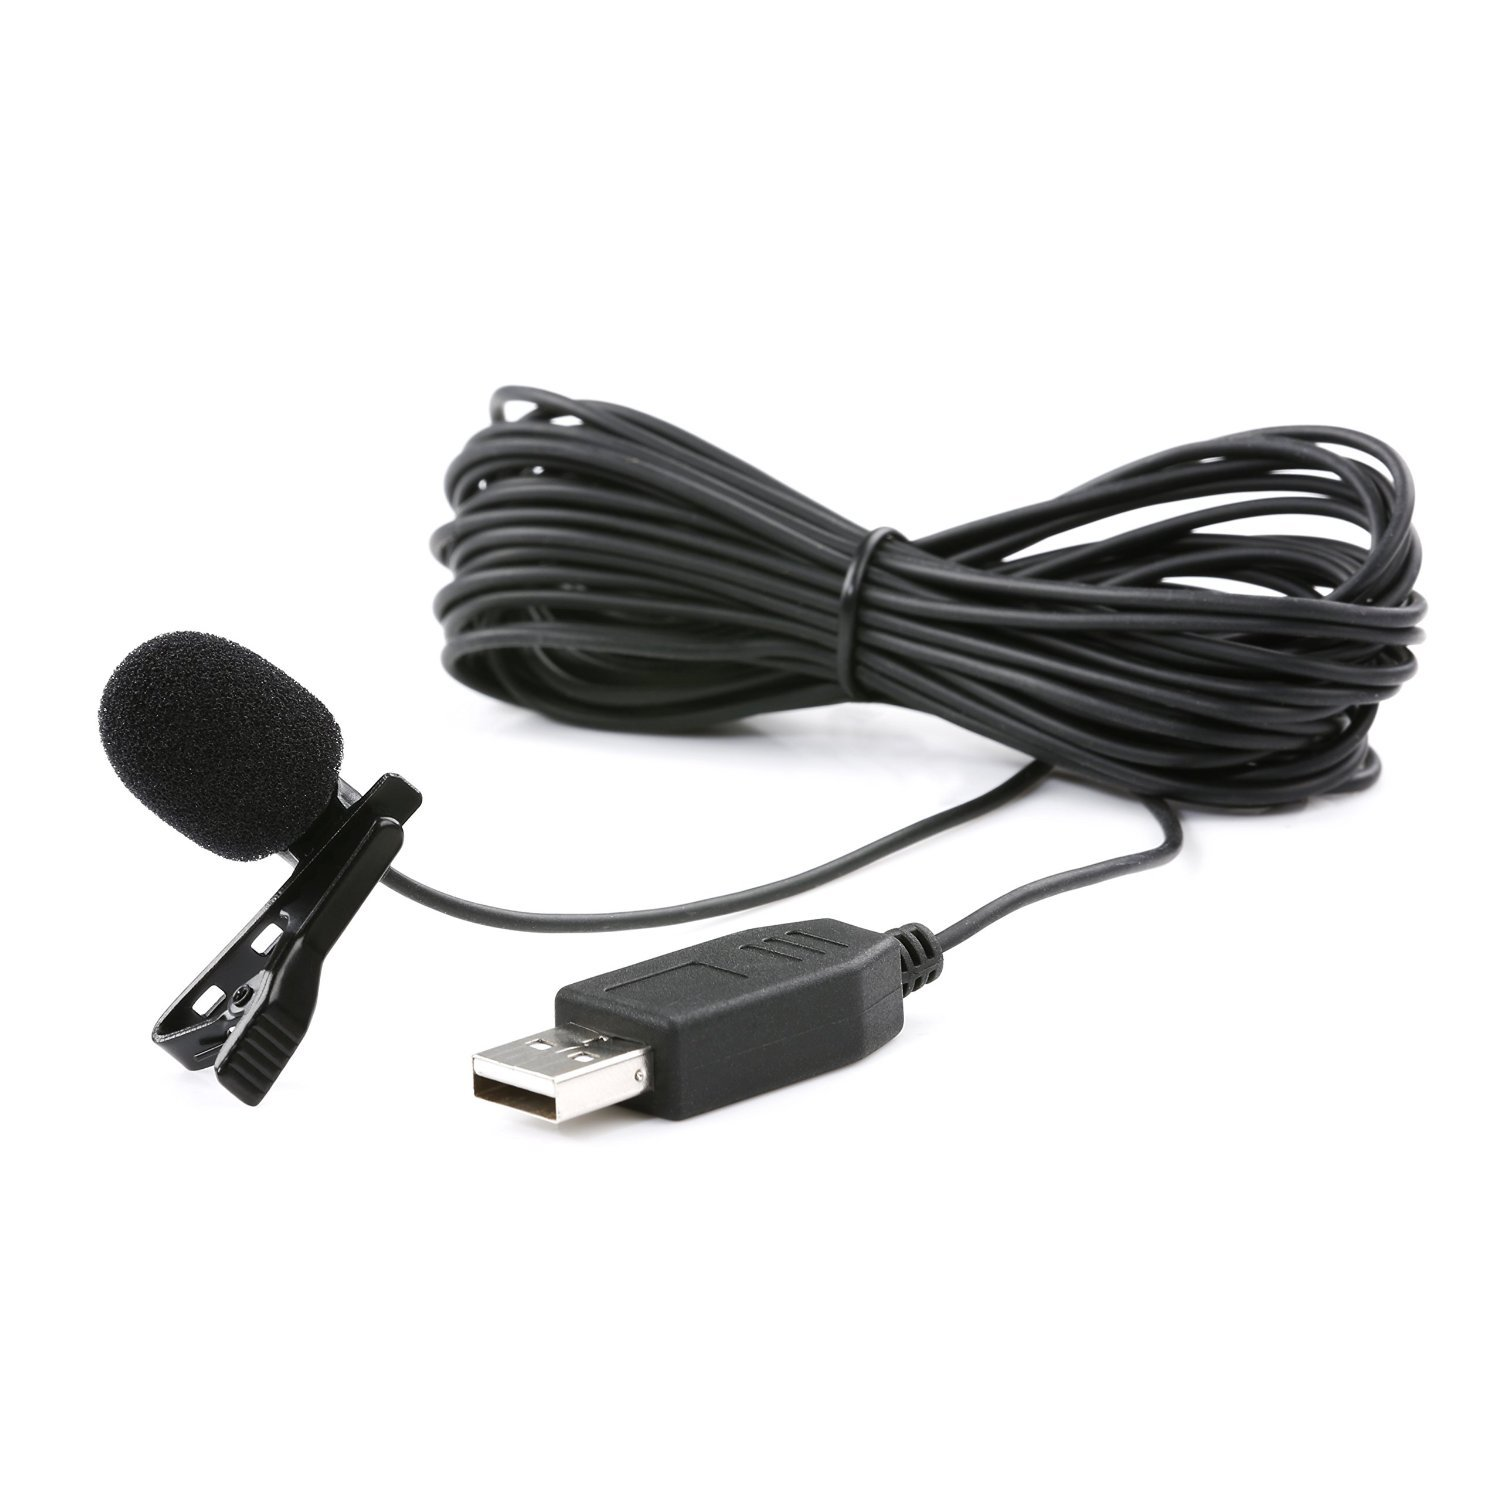 Movo M1 USB Lavalier Lapel Clip-on Omnidirectional Condenser Computer Microphone for PC and Mac (20' Cord) USB-M1